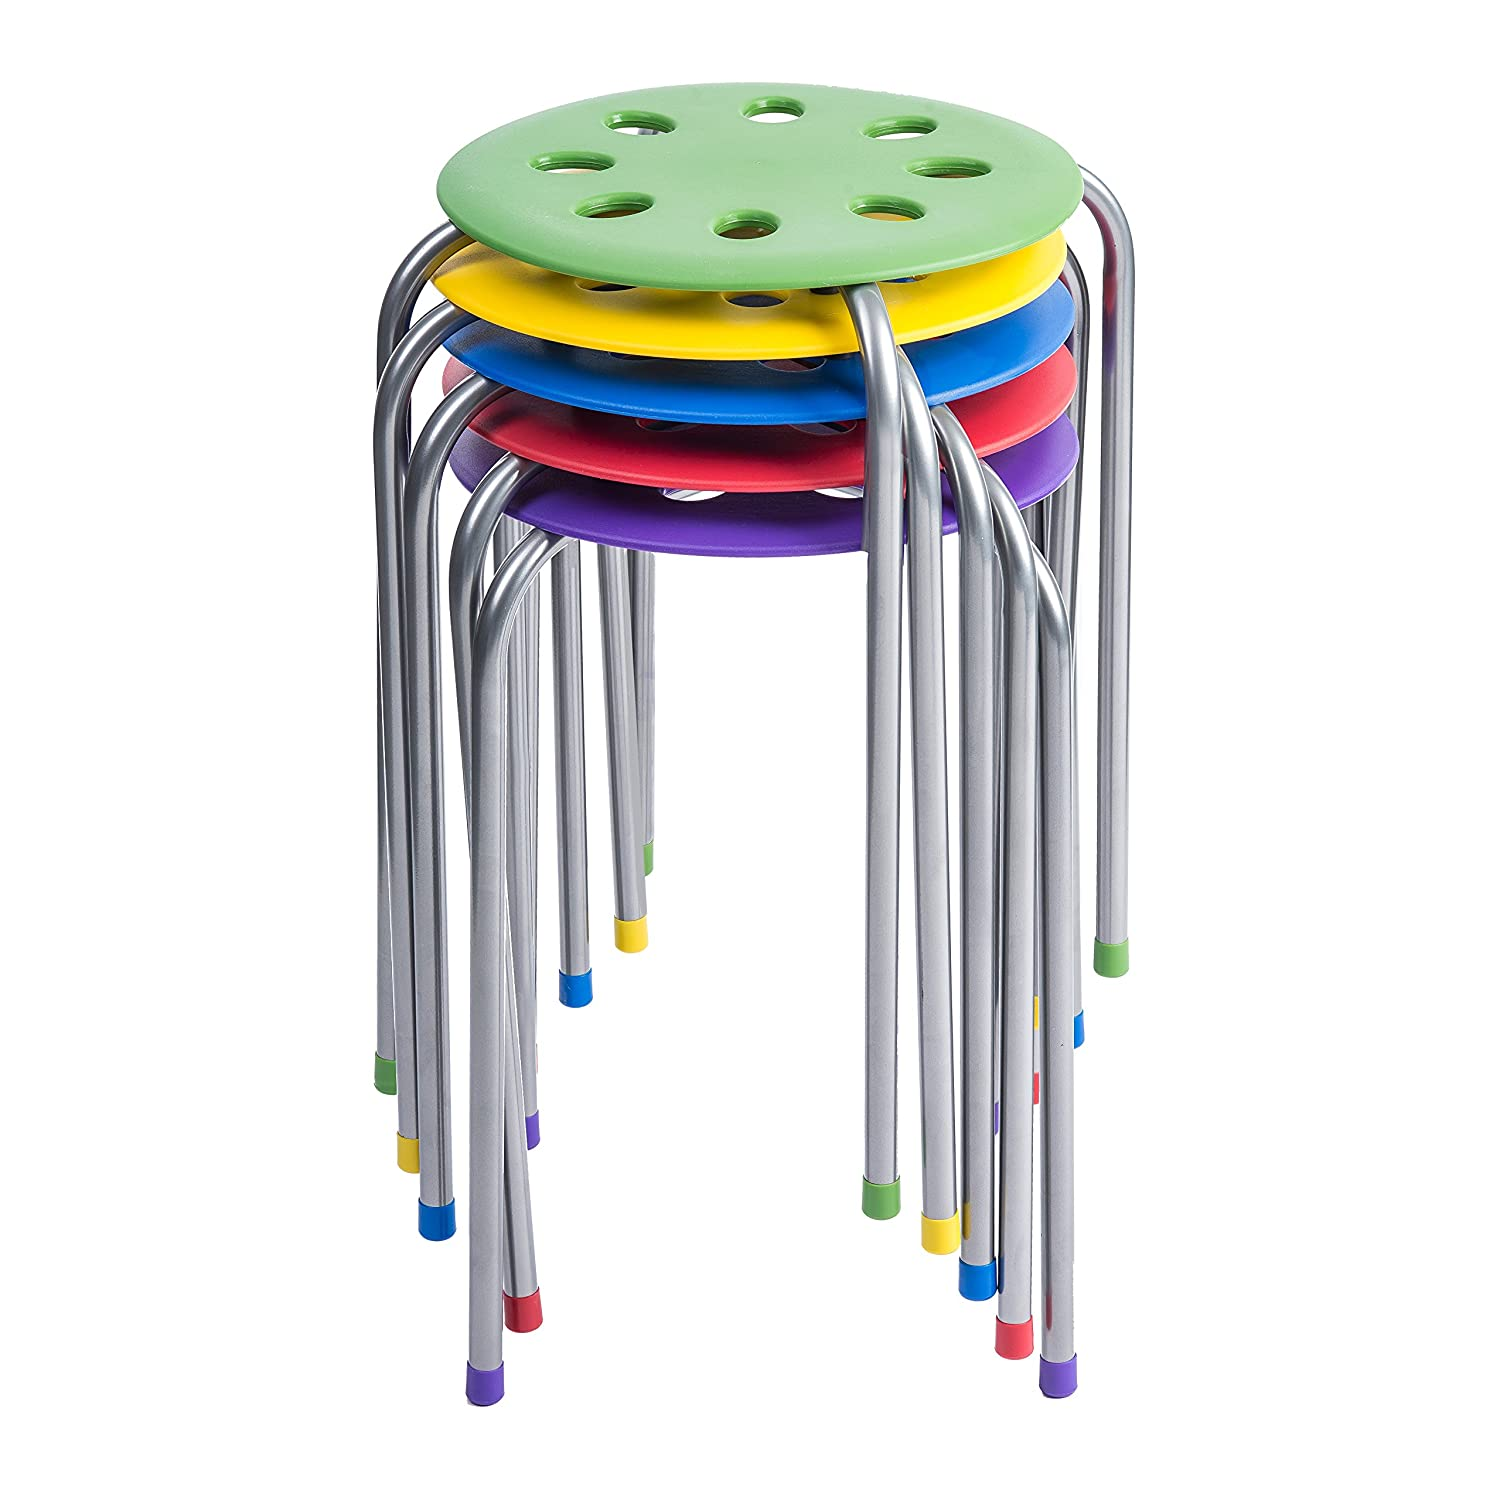 Pearington Plastic Classroom Furniture Stools for Kids; Multipurpose Stool Chairs; Flexible Seating; Stacking Stools, Stainless Steel Legs,- Set of 5, Multi-Color